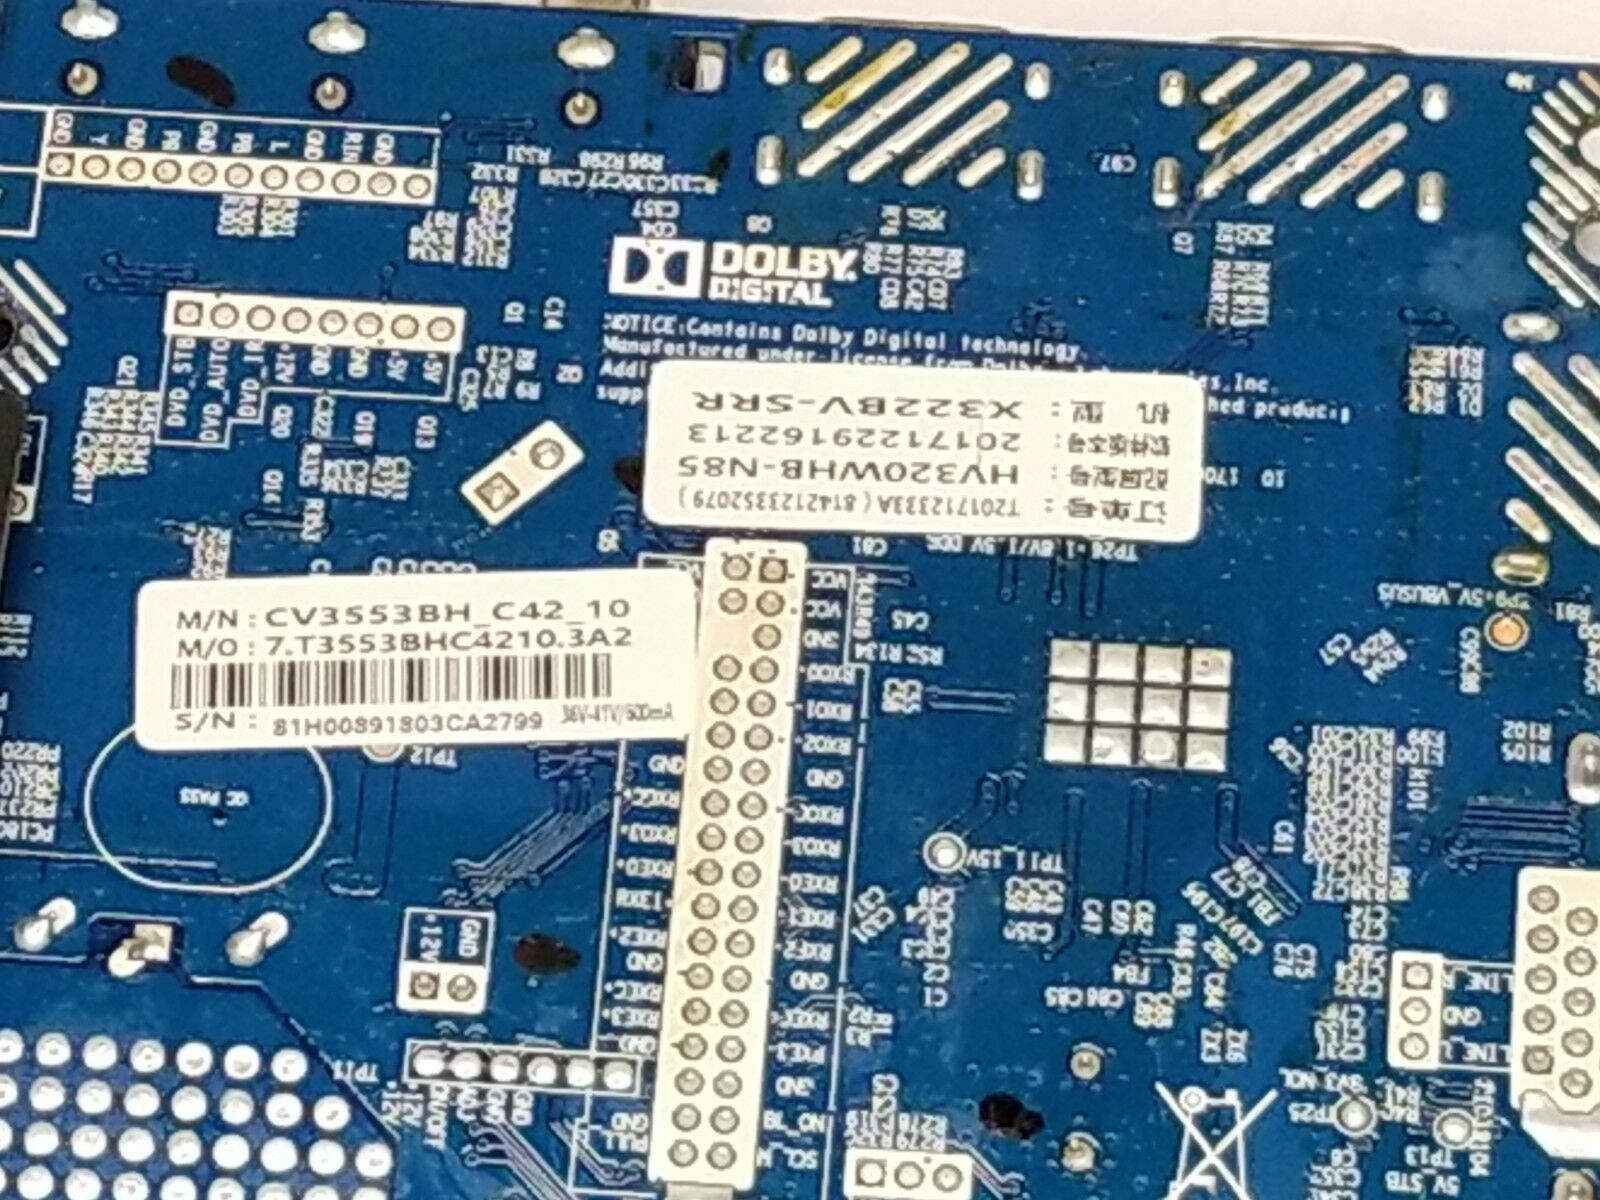 Sceptre Led Lcd Tv MAIN/POWER Supply Board and 12 similar items